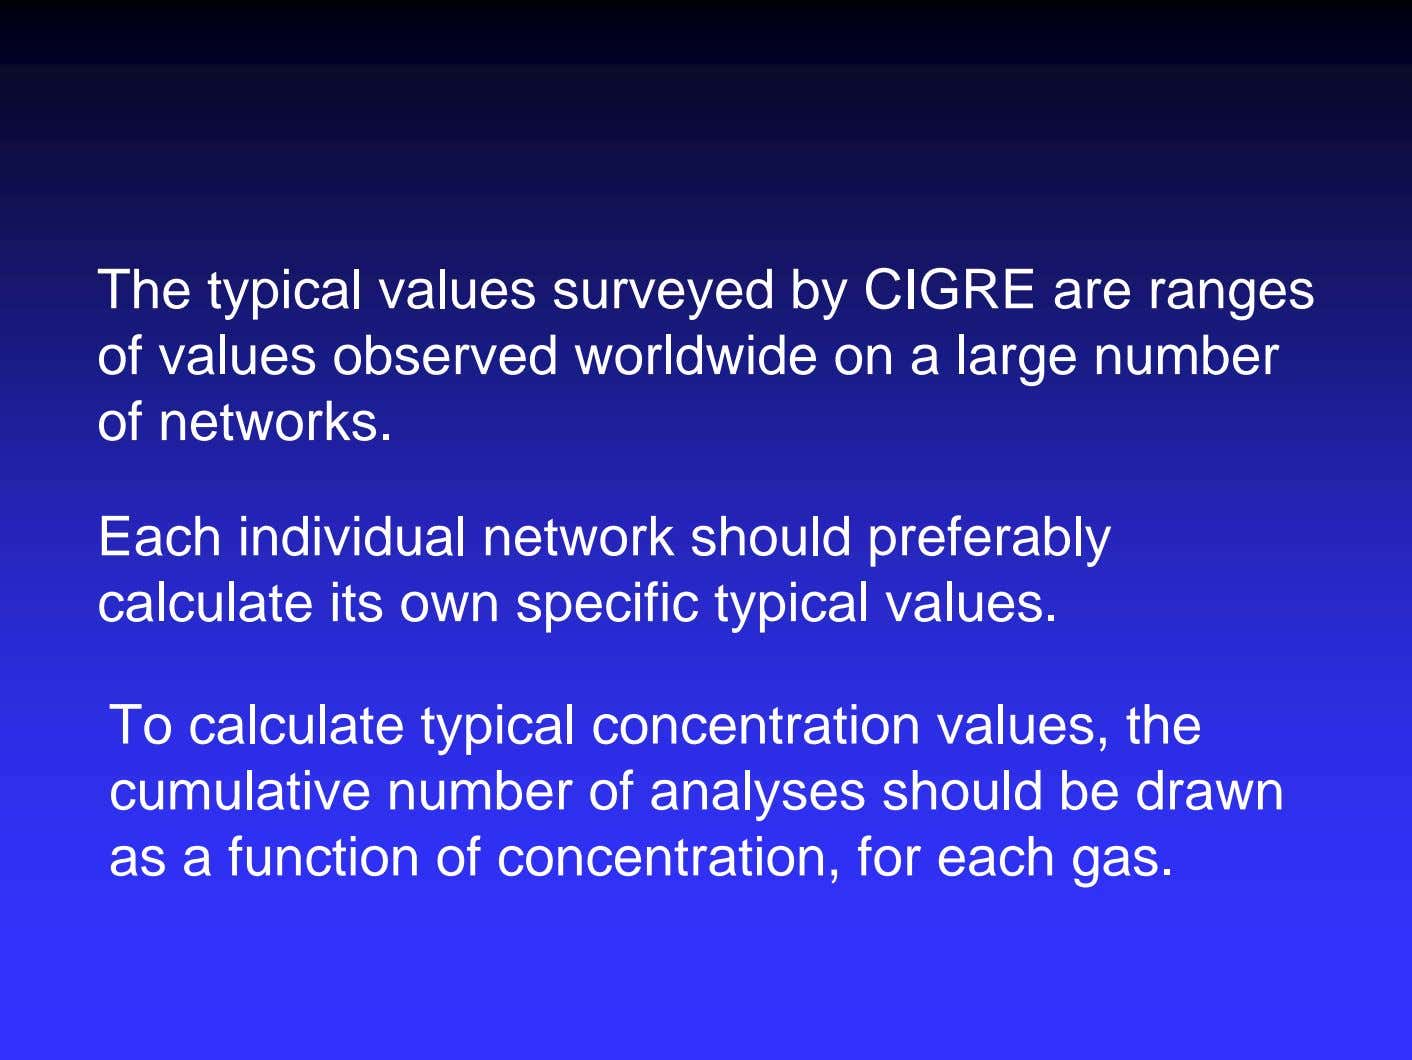 The typical values surveyed by CIGRE are ranges of values observed worldwide on a large